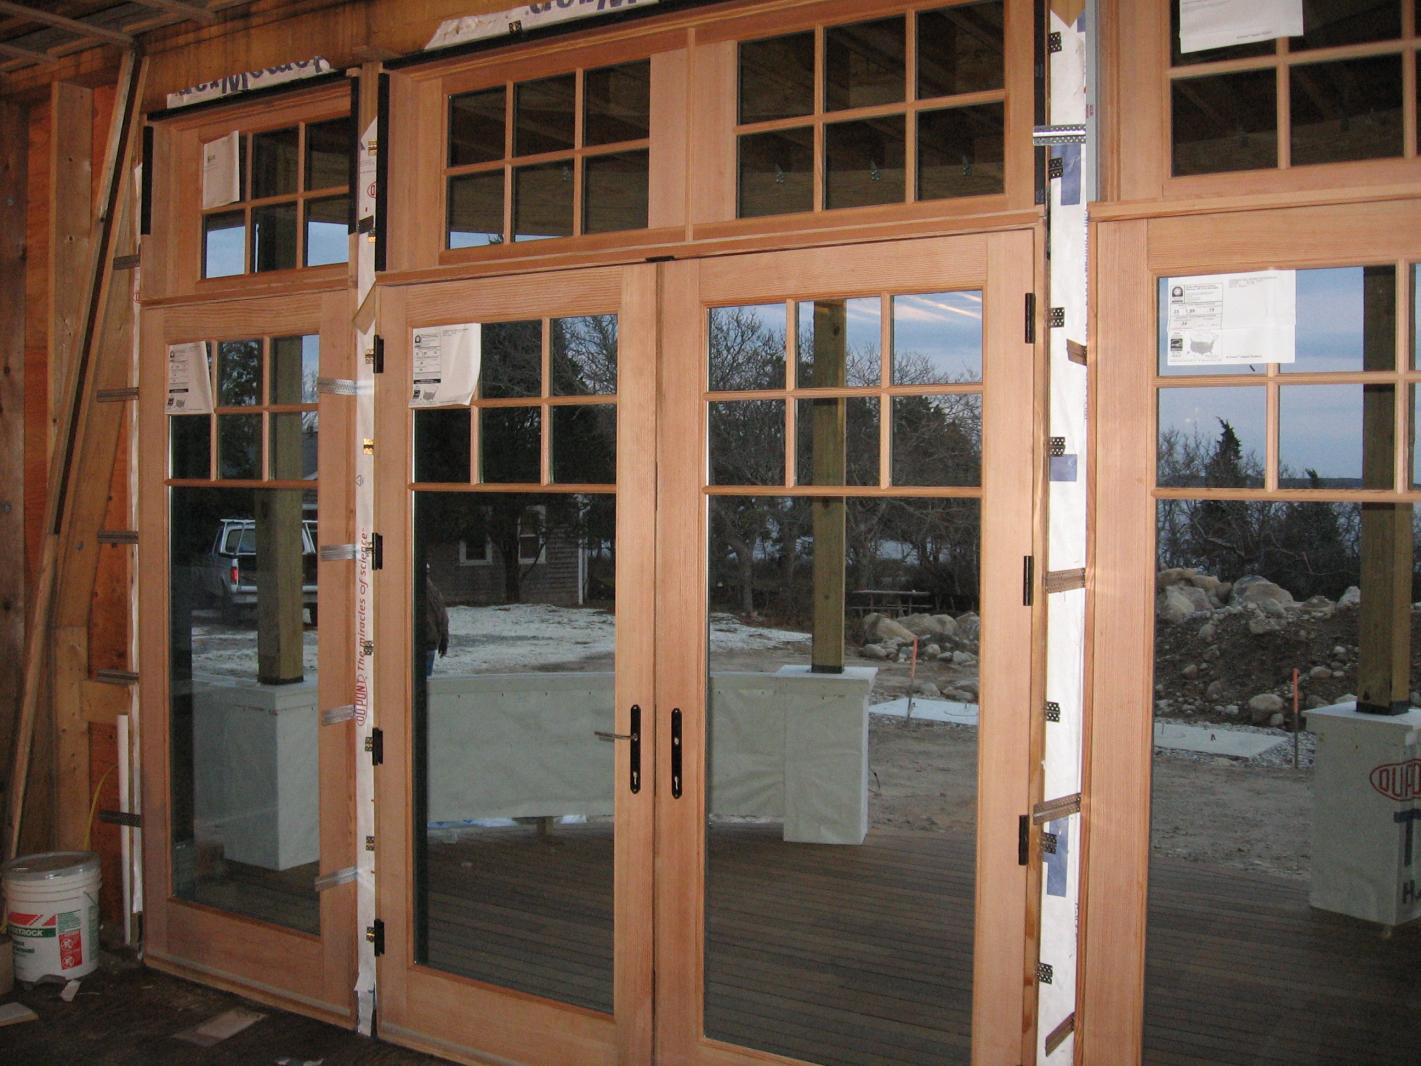 kolbe and kolbe windows folding wooden kolbe windows arriveimg1191jpg windows arrive carpentry contractor talk